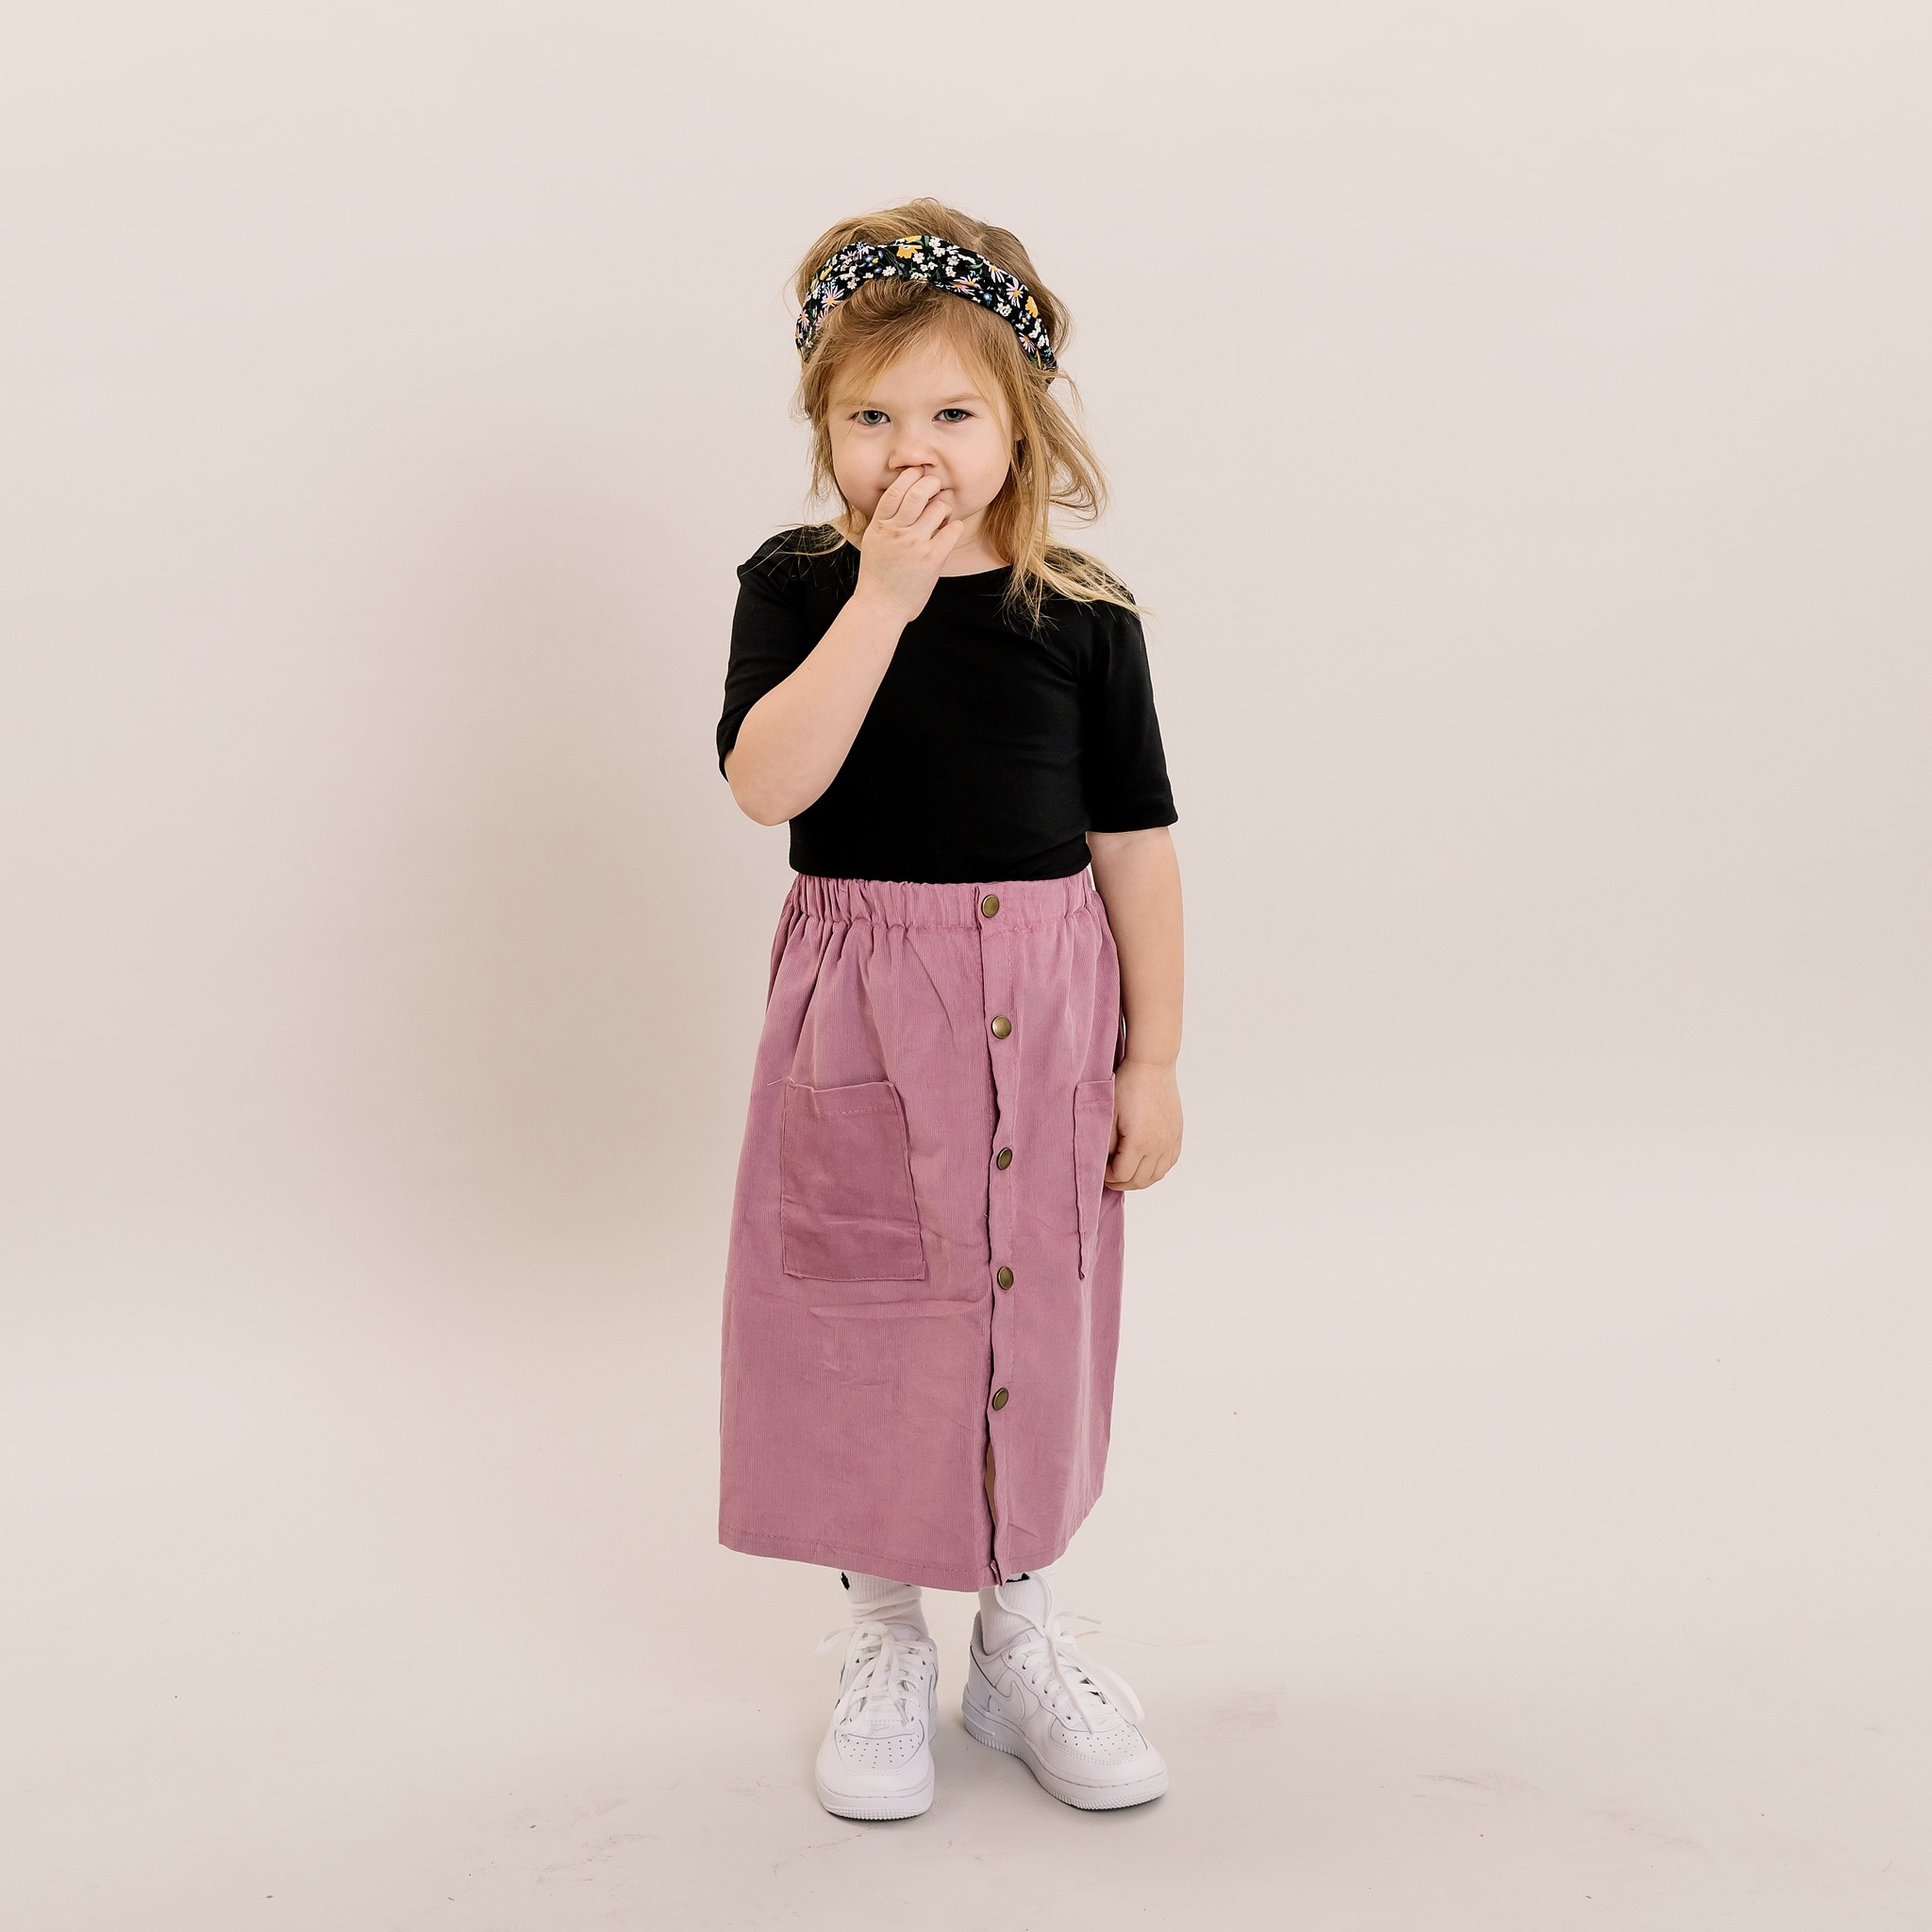 No Labels Kidswear MAXI SKIRT FOR GIRLS | LONG SKIRT | GIRL CLOTHES